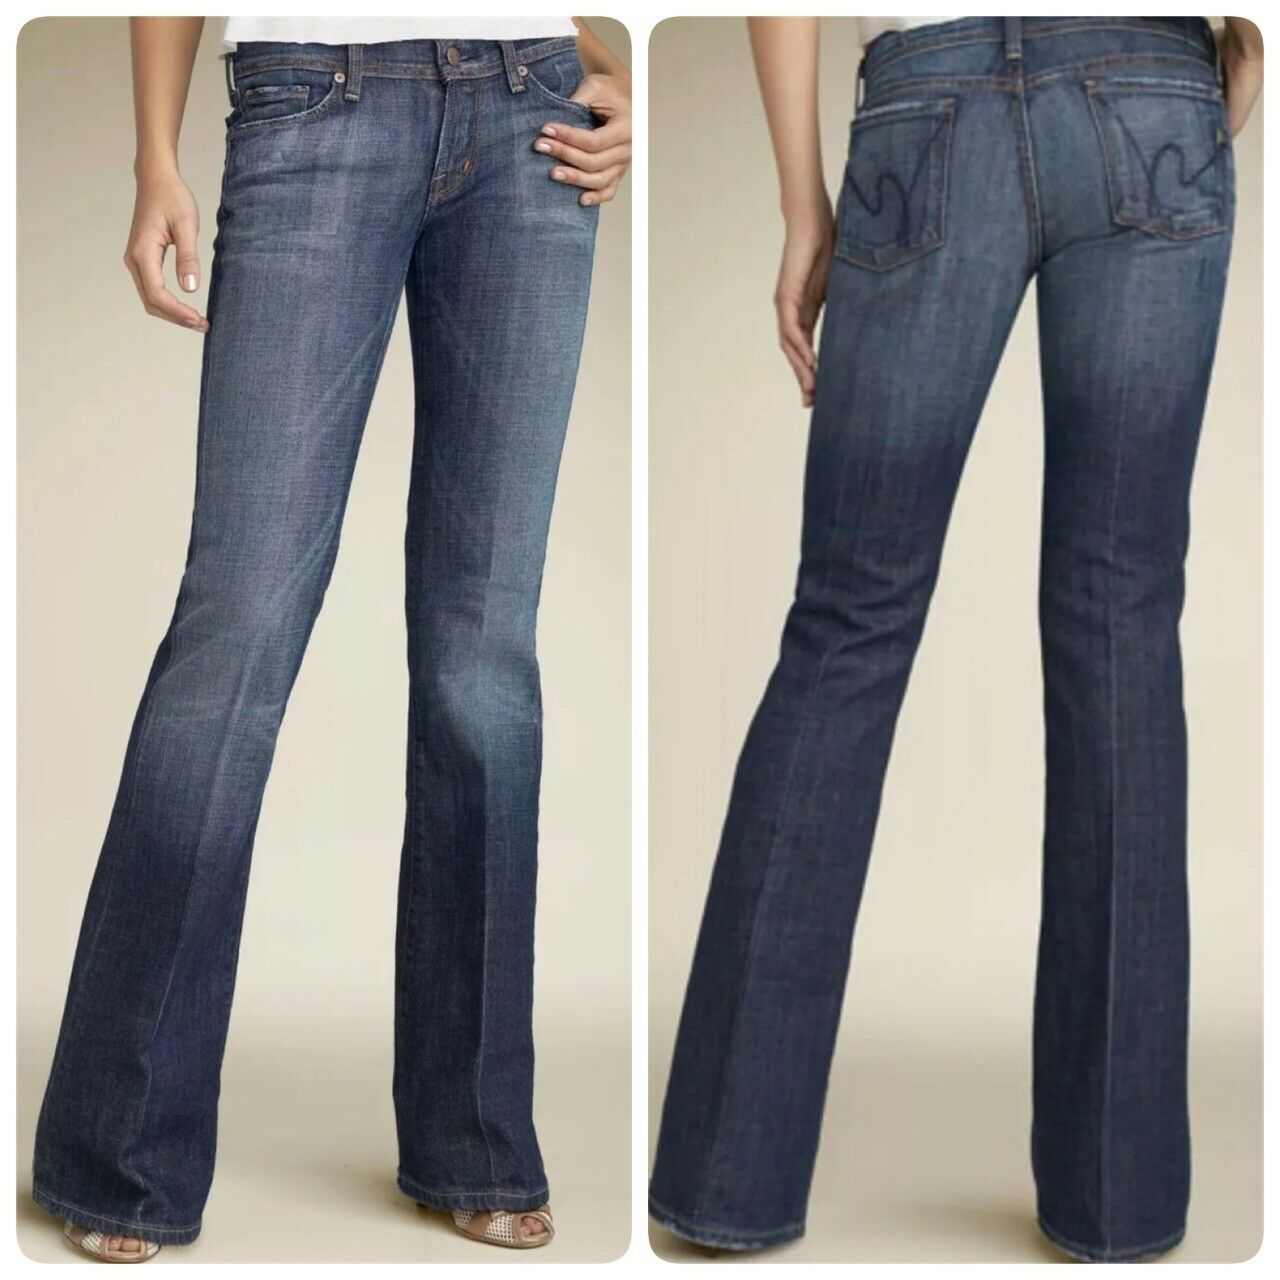 Citizen of Humanity Women's Jeans Straight Leg bluee Size 30